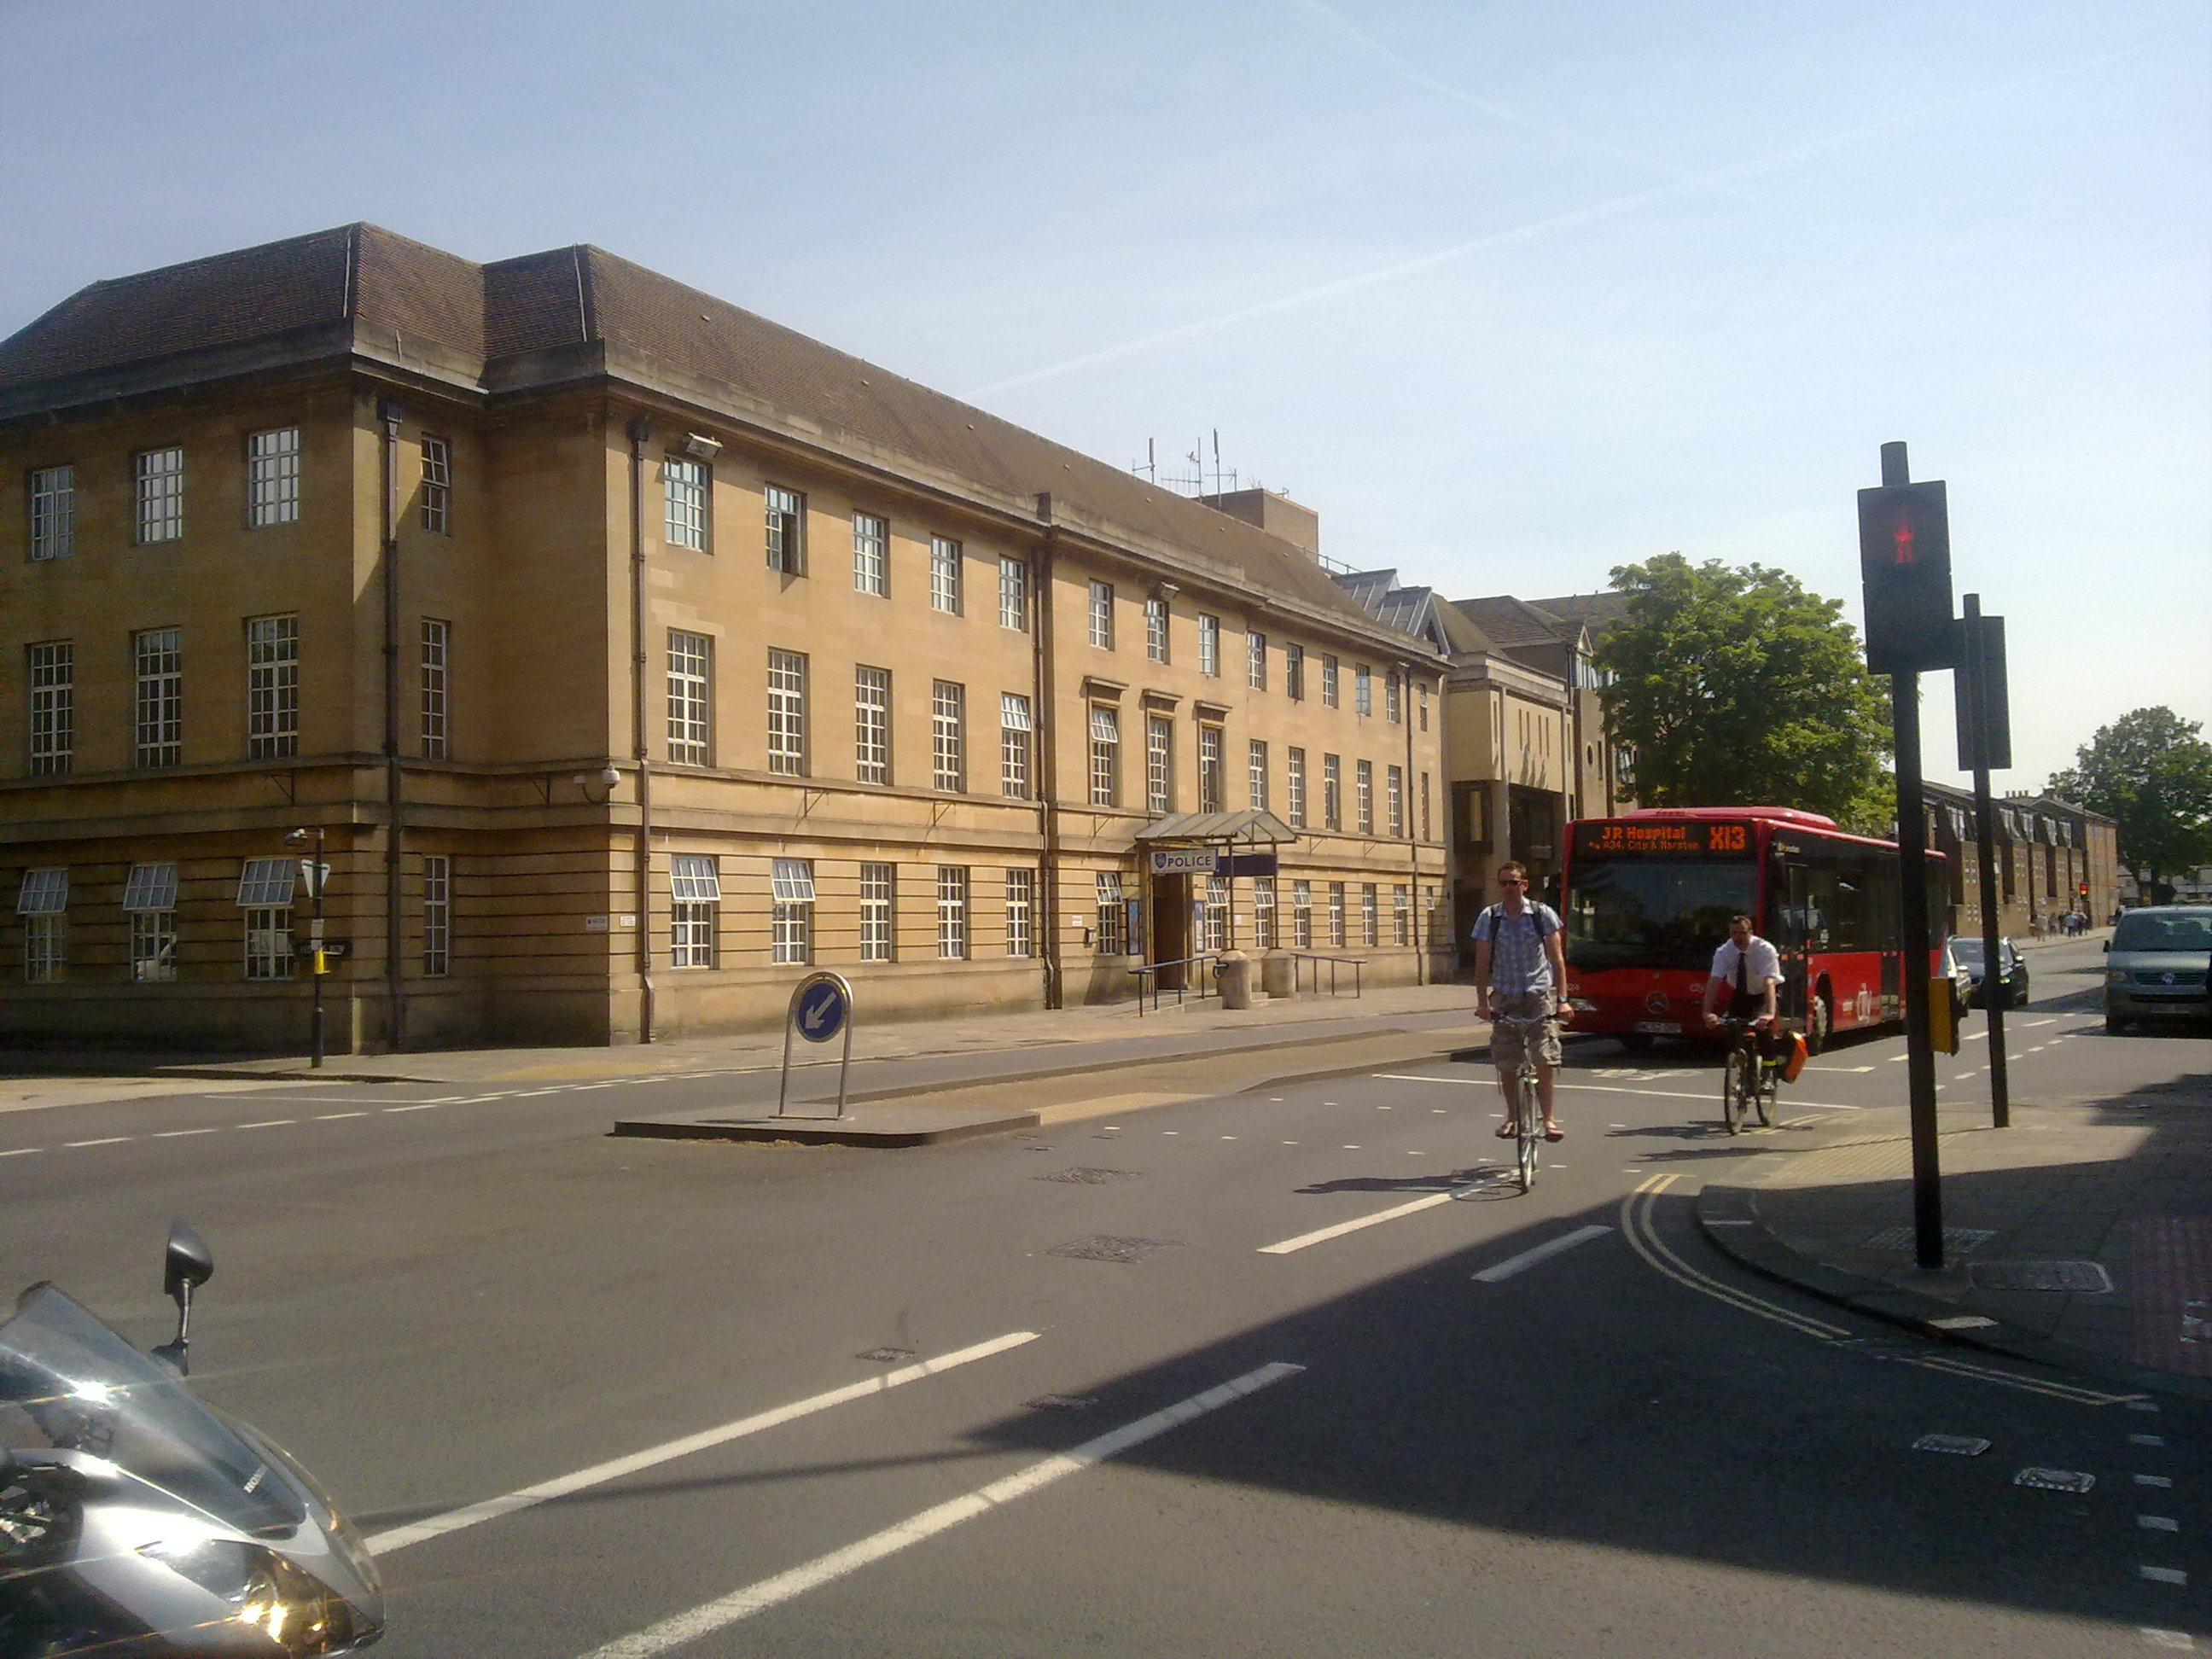 Oxford transport links set for overhaul